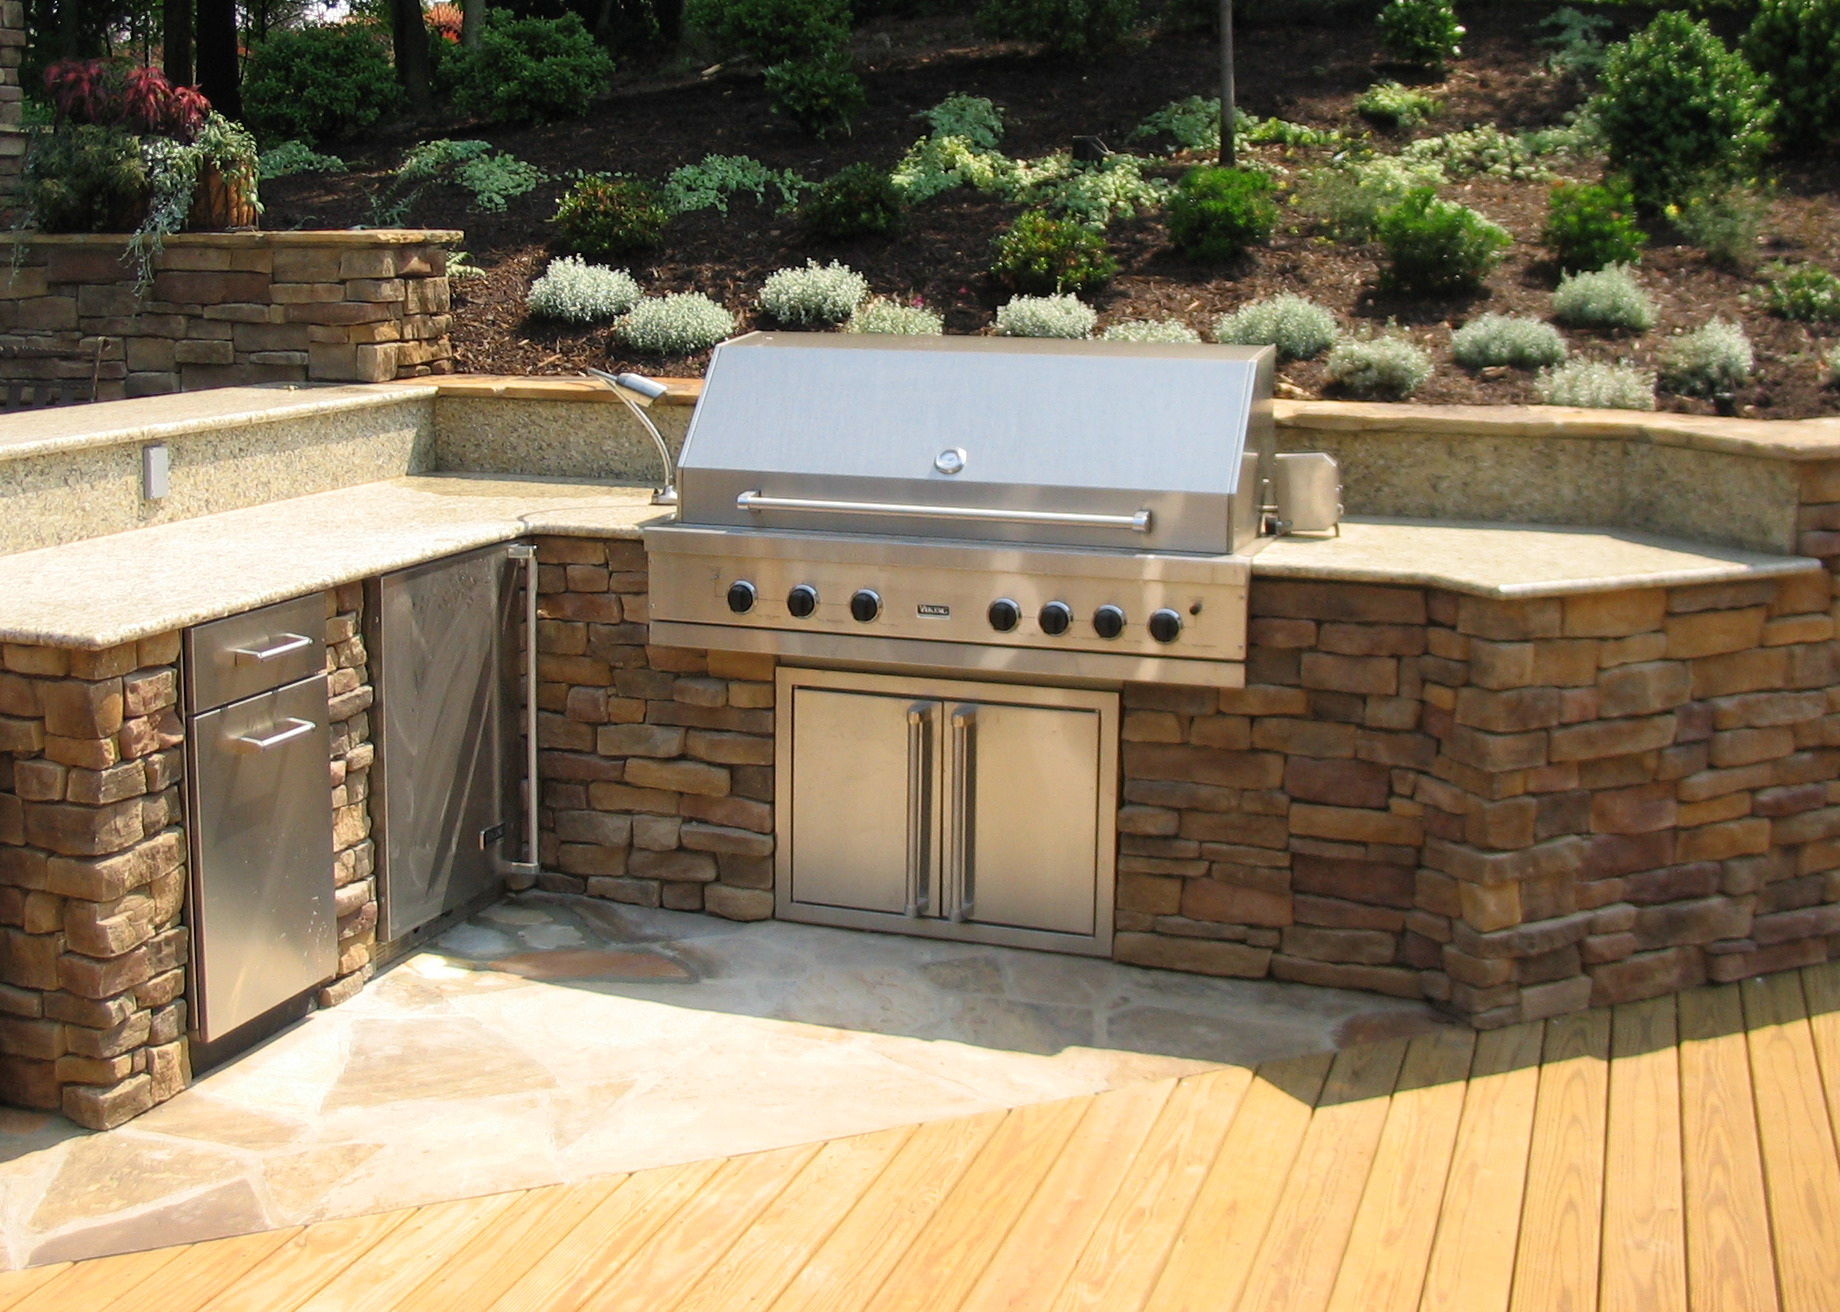 Designing an Outdoor Kitchen | Revolutionary Gardens on Built In Grill Backyard id=39535